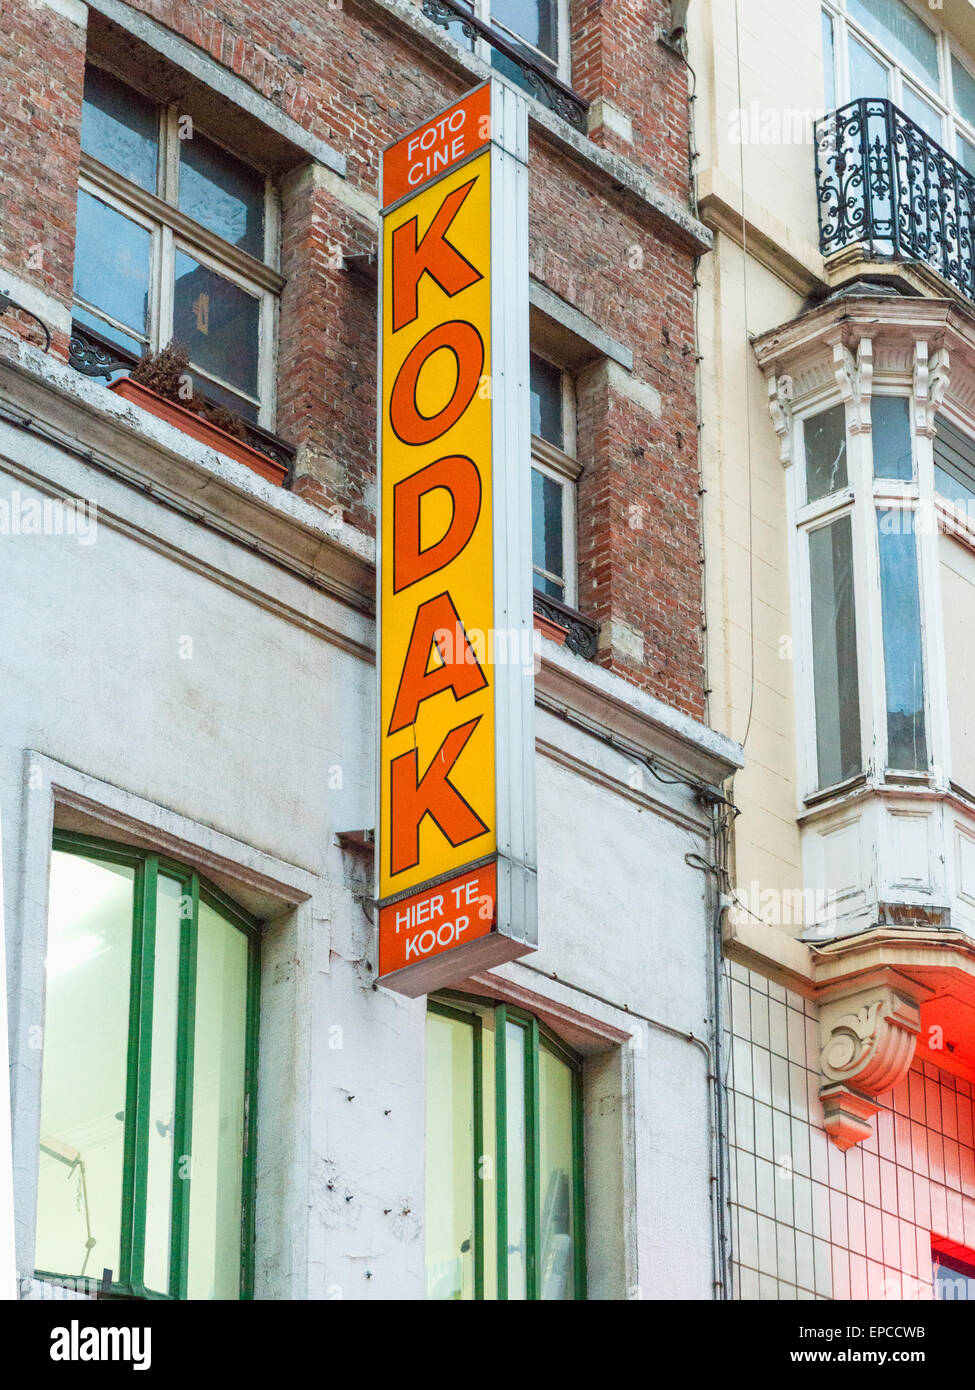 Vintage 'Kodak' sign at a photographic store in Brussels, Belgium. - Stock Image